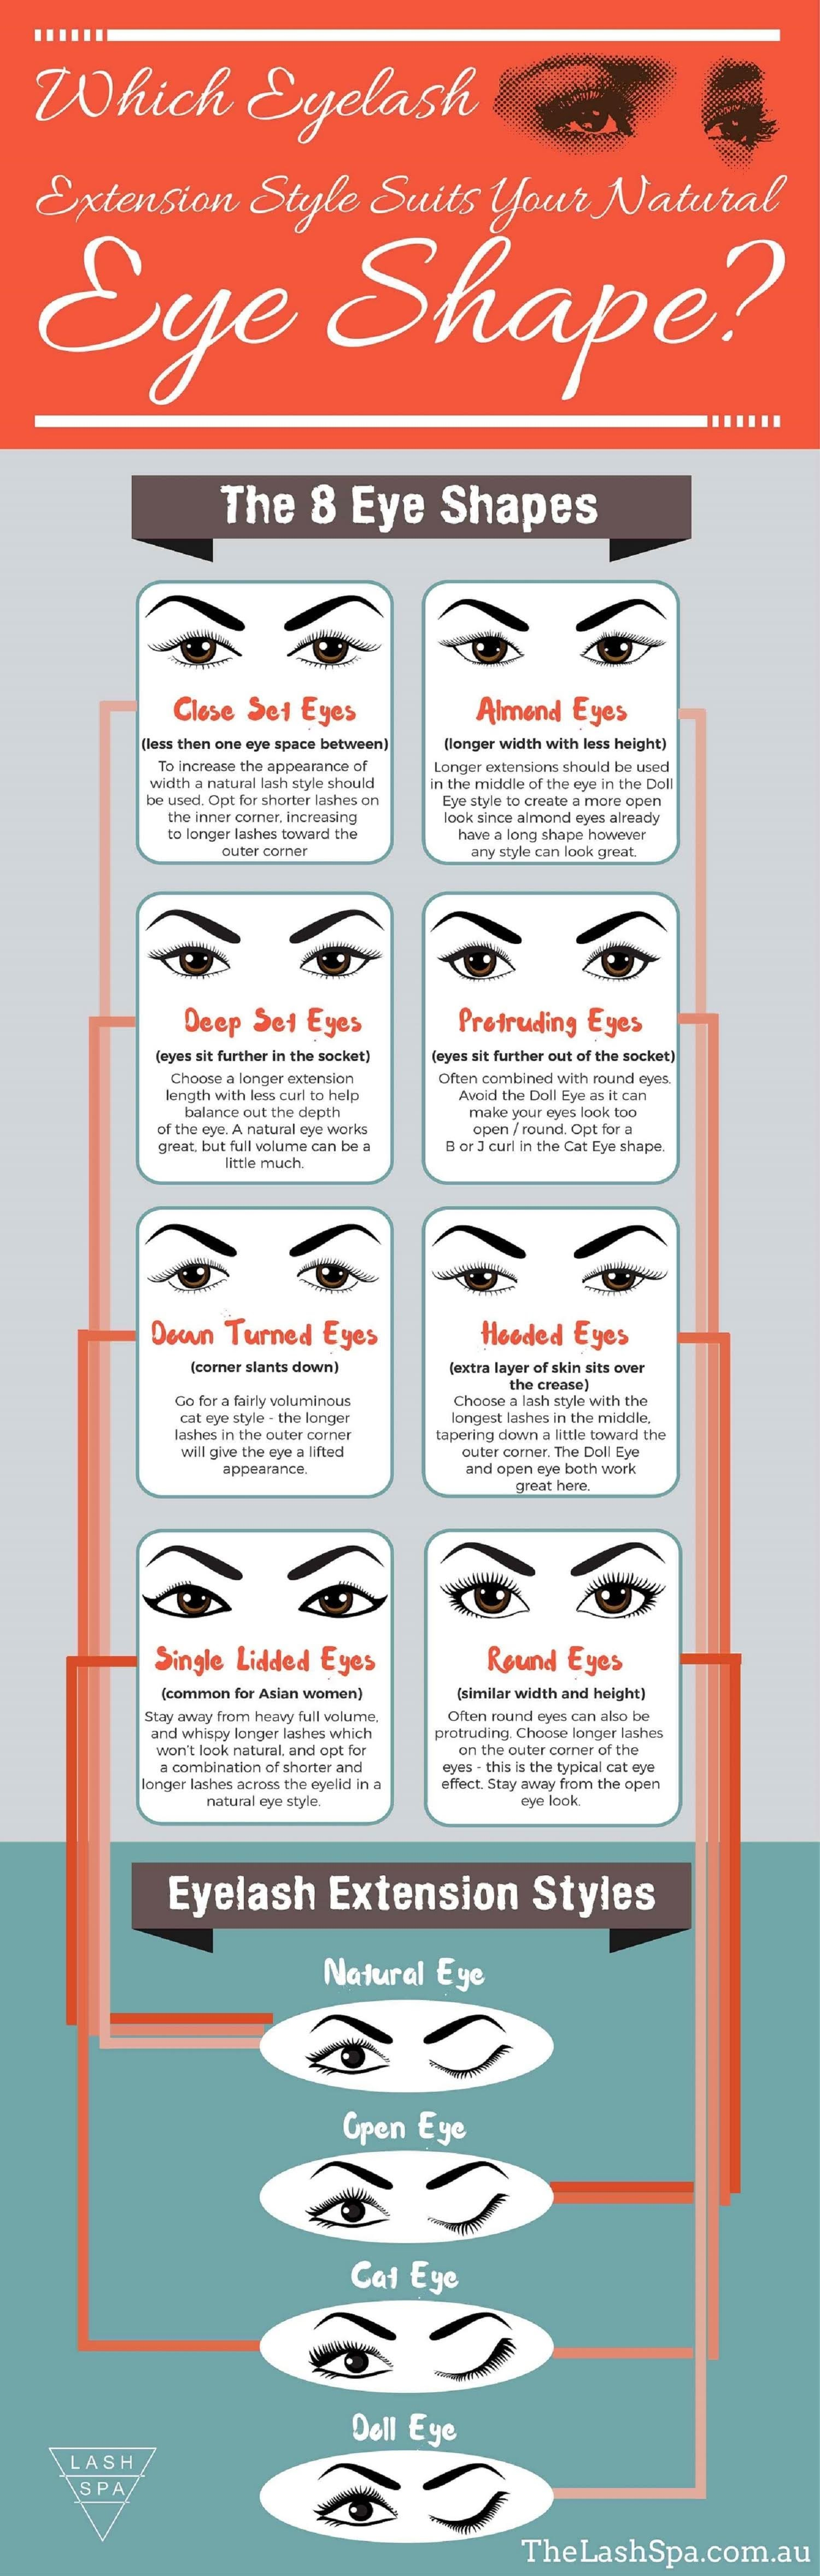 Which Eyelash Extension Style Suits Your Natural Eye Shape? #infographic